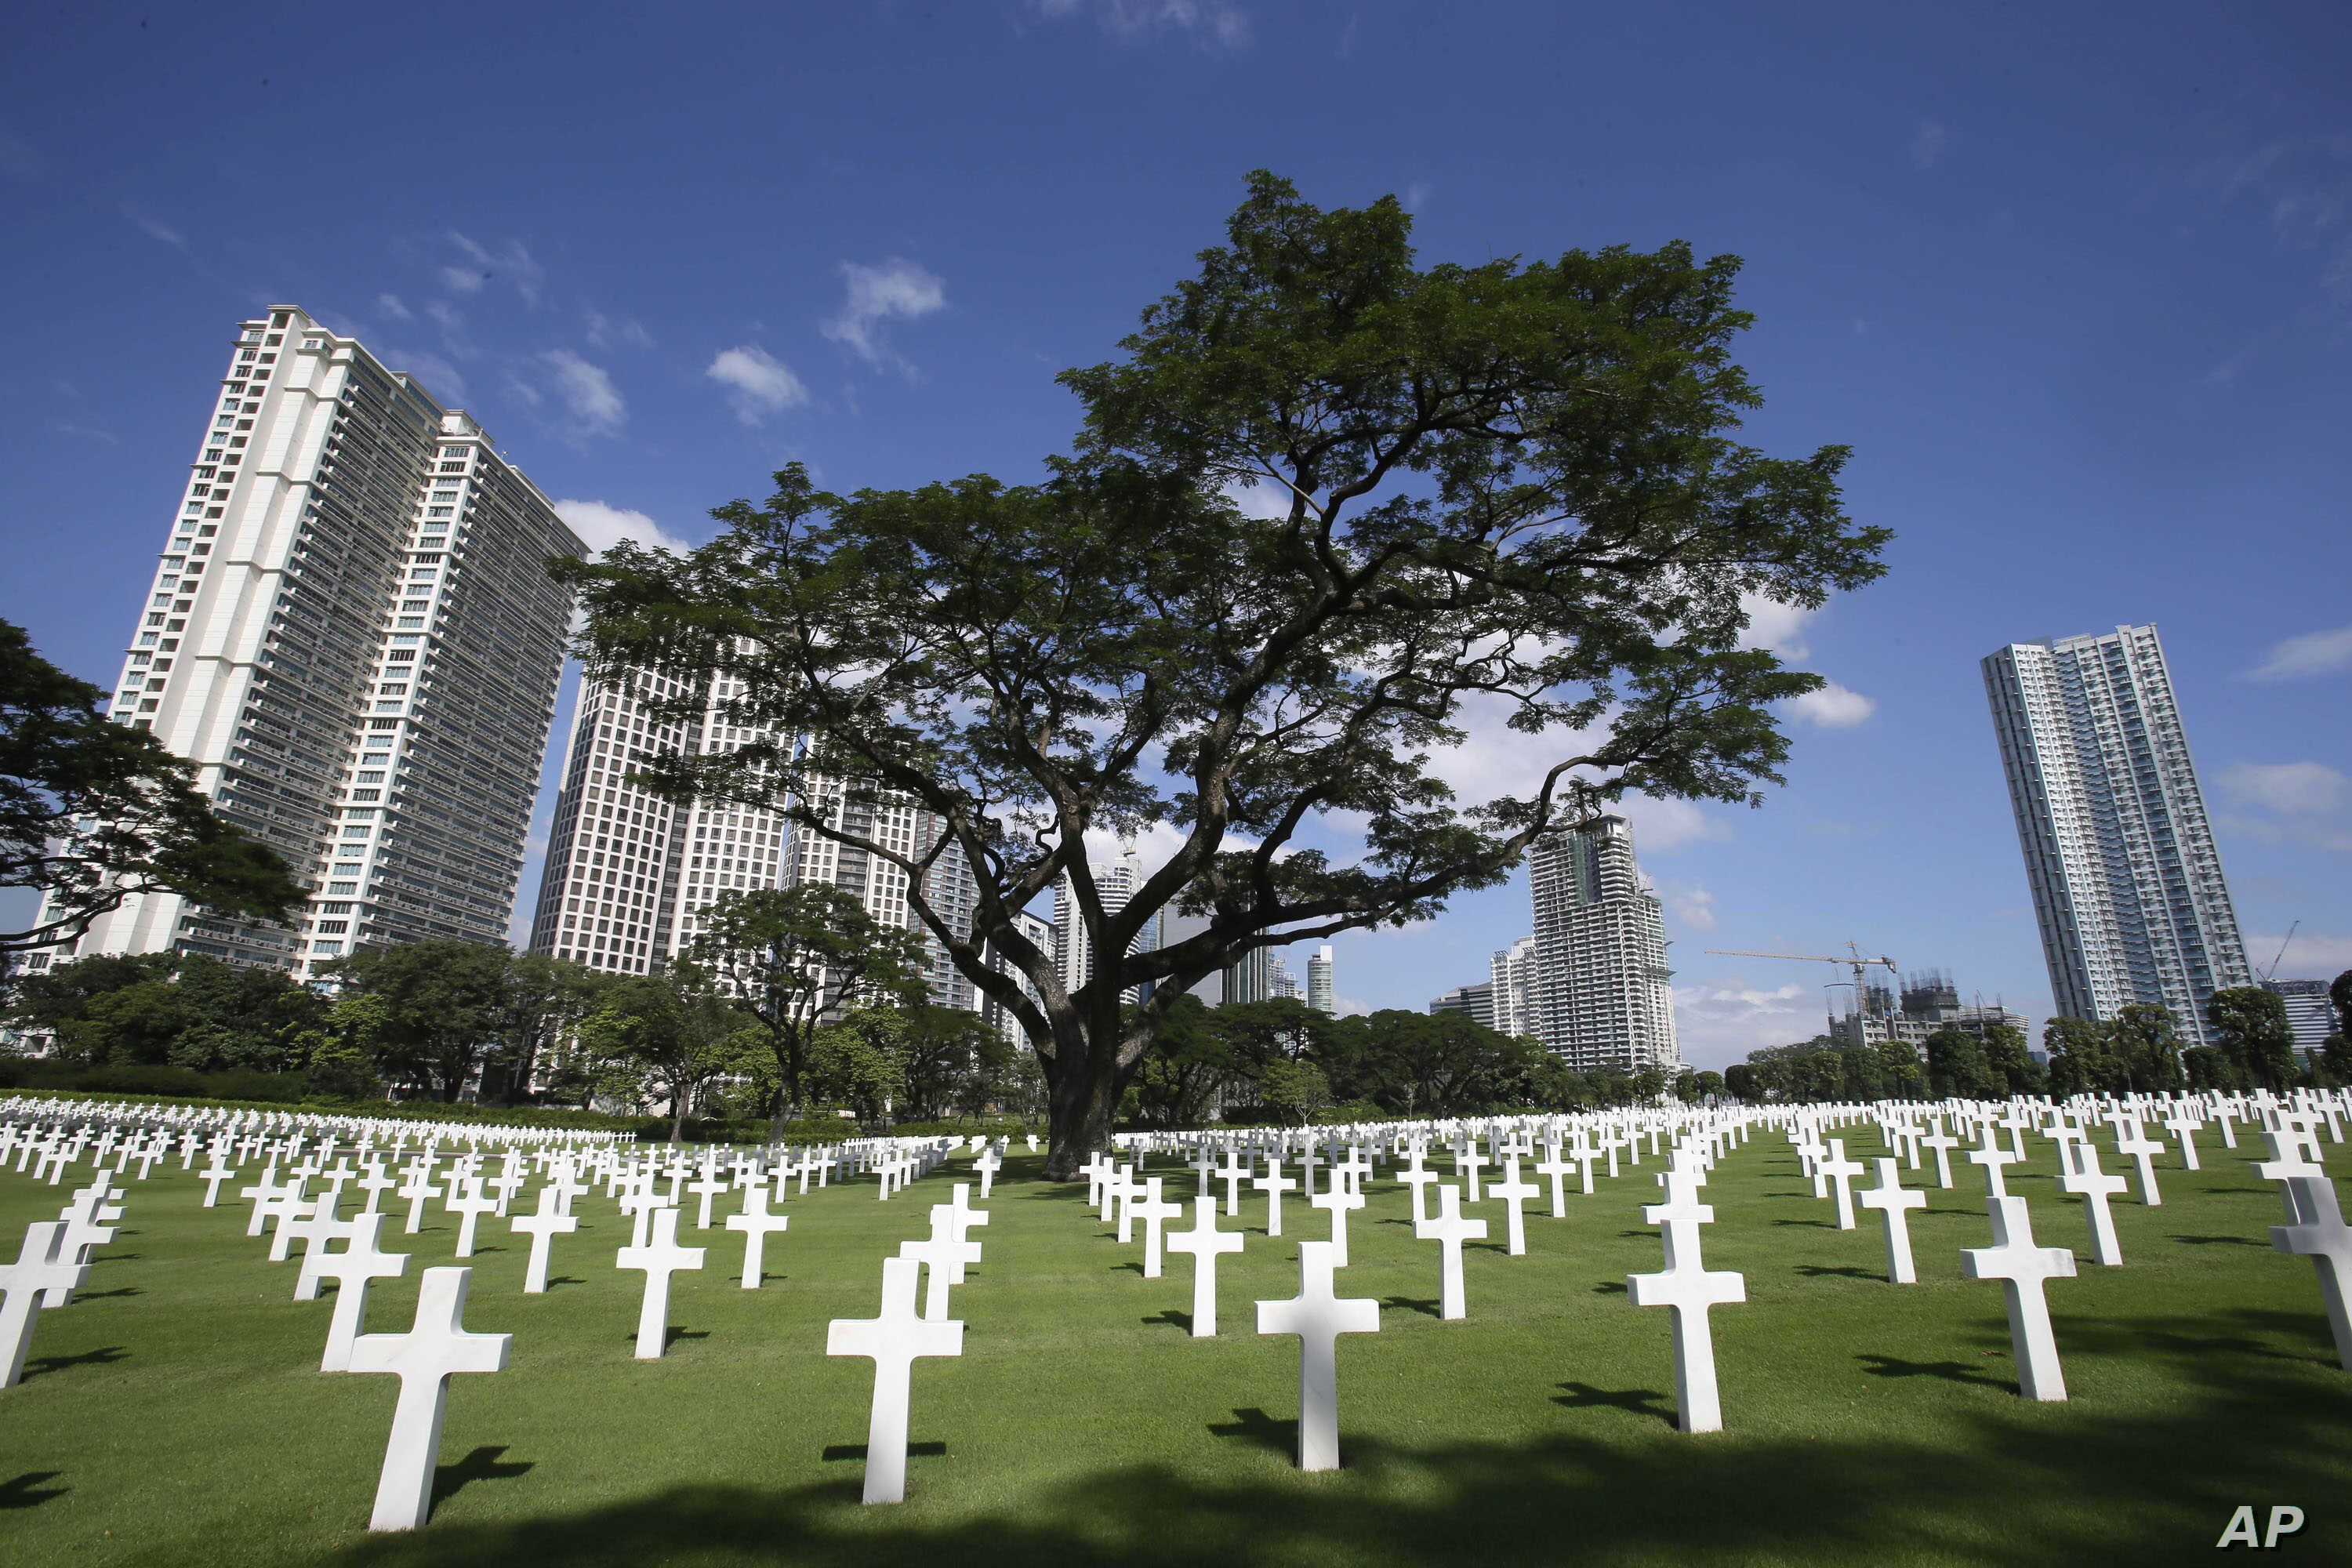 FILE - Rows of crosses totaling 16,933 Latin crosses, 164 Stars of David and 3,740 unknowns, dot the 152-acre American Cemetery as U.S. and Filipino WWII veterans and other officials (unseen) commemorate U.S. Veterans Day at the American Cemetery at ...